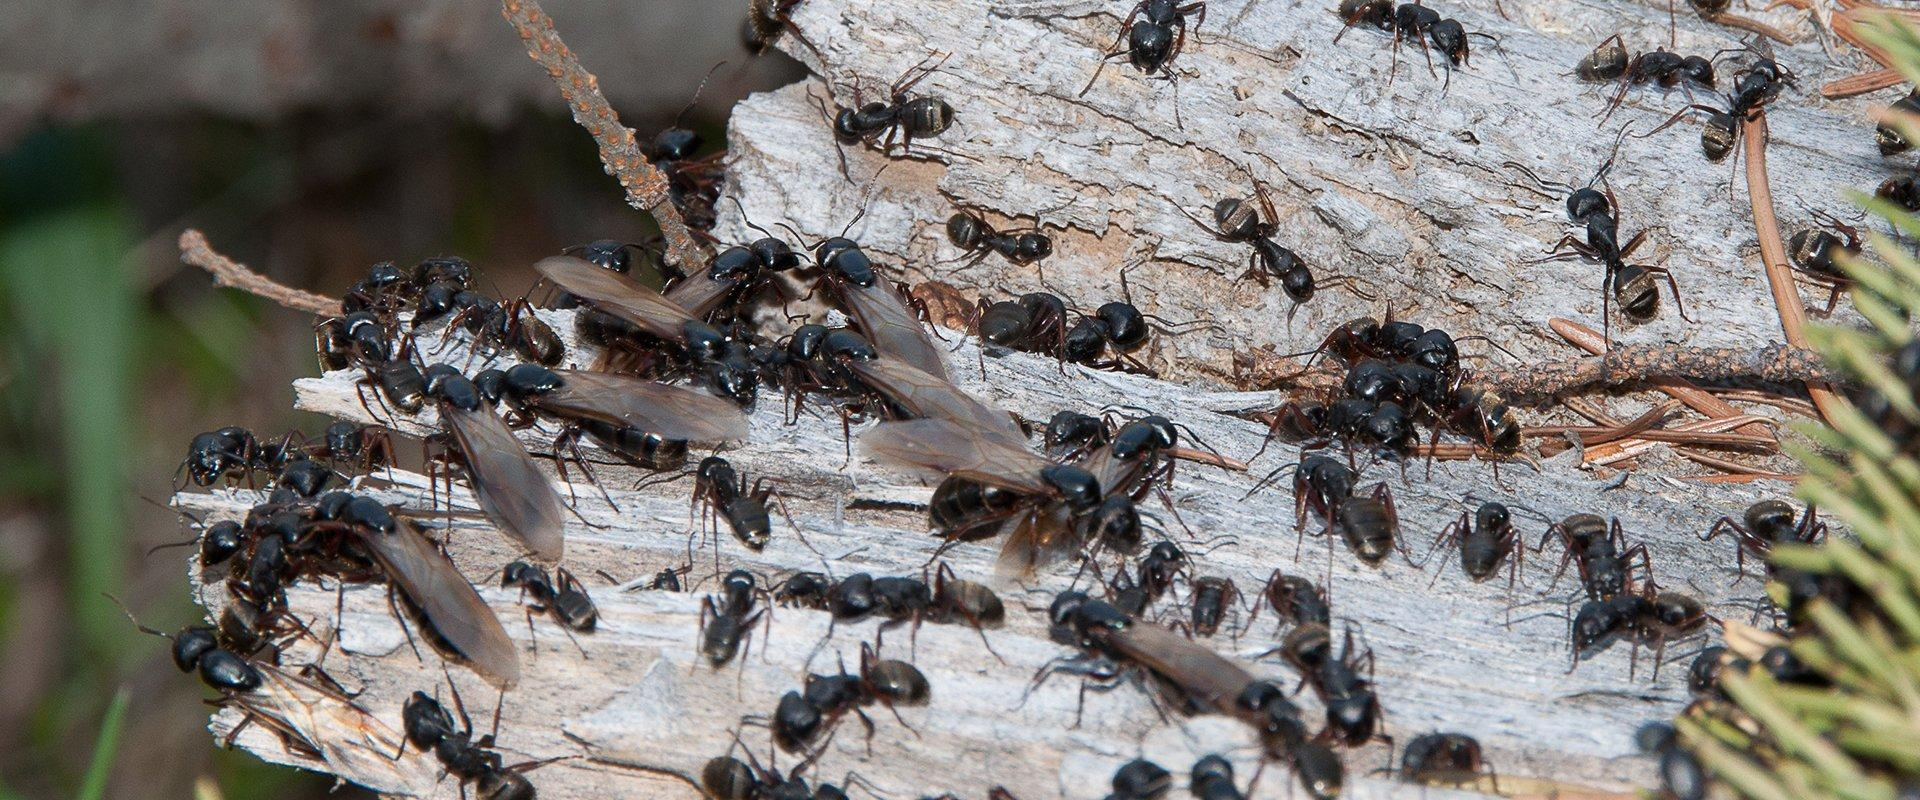 carpenter ants on wood